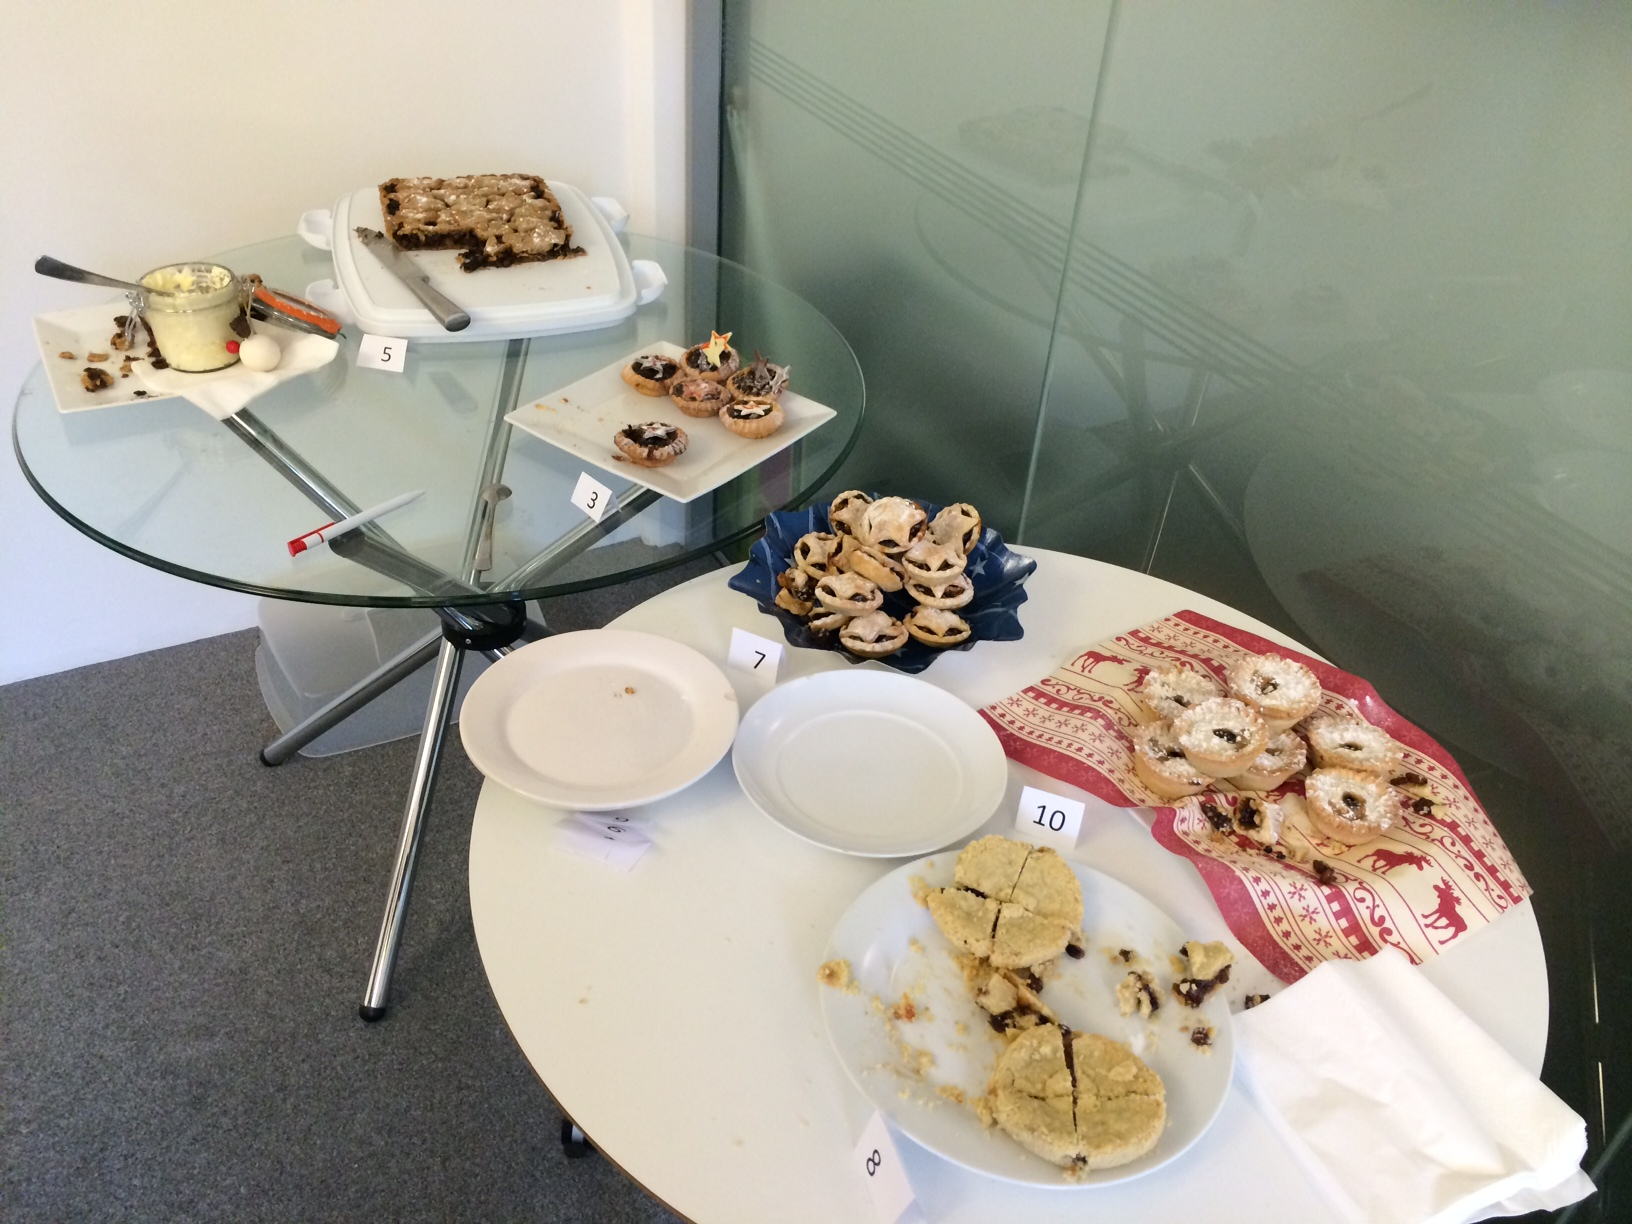 Think Tank hosts annual mince pie bake off